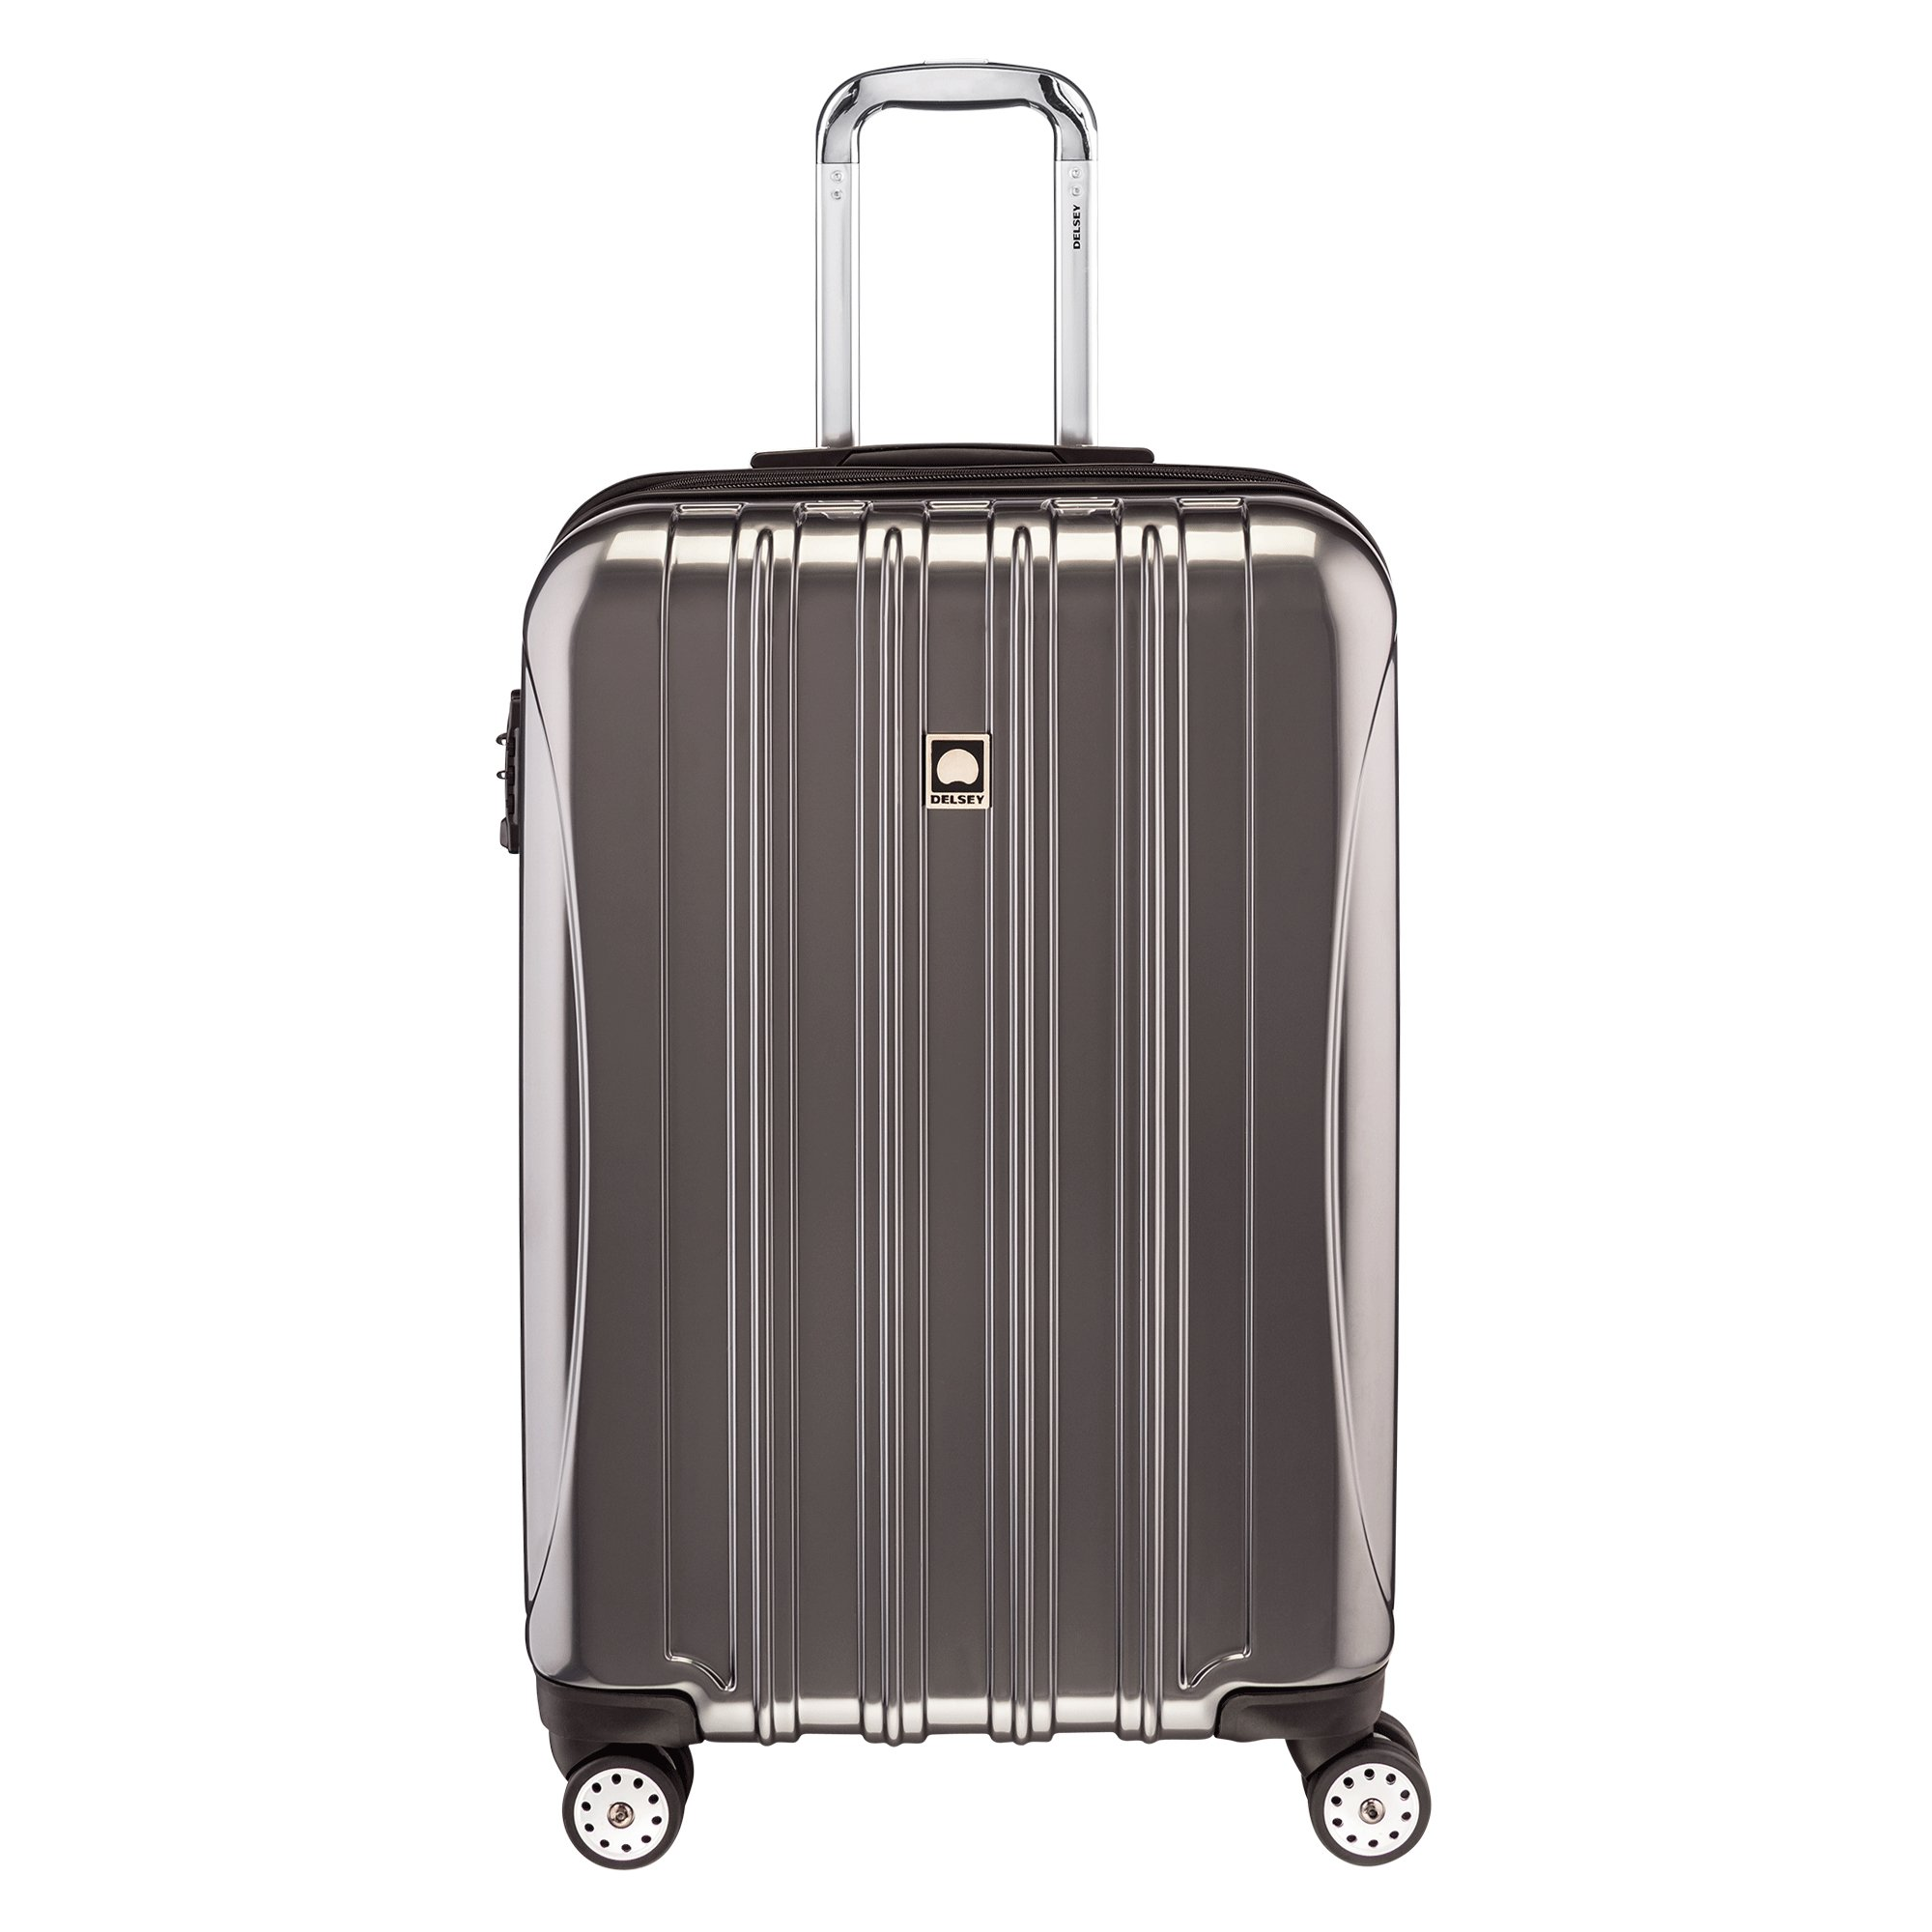 Delsey Luggage Helium Aero 25 Inch Expandable Spinner Trolley, Titanium,One Size by DELSEY Paris (Image #1)